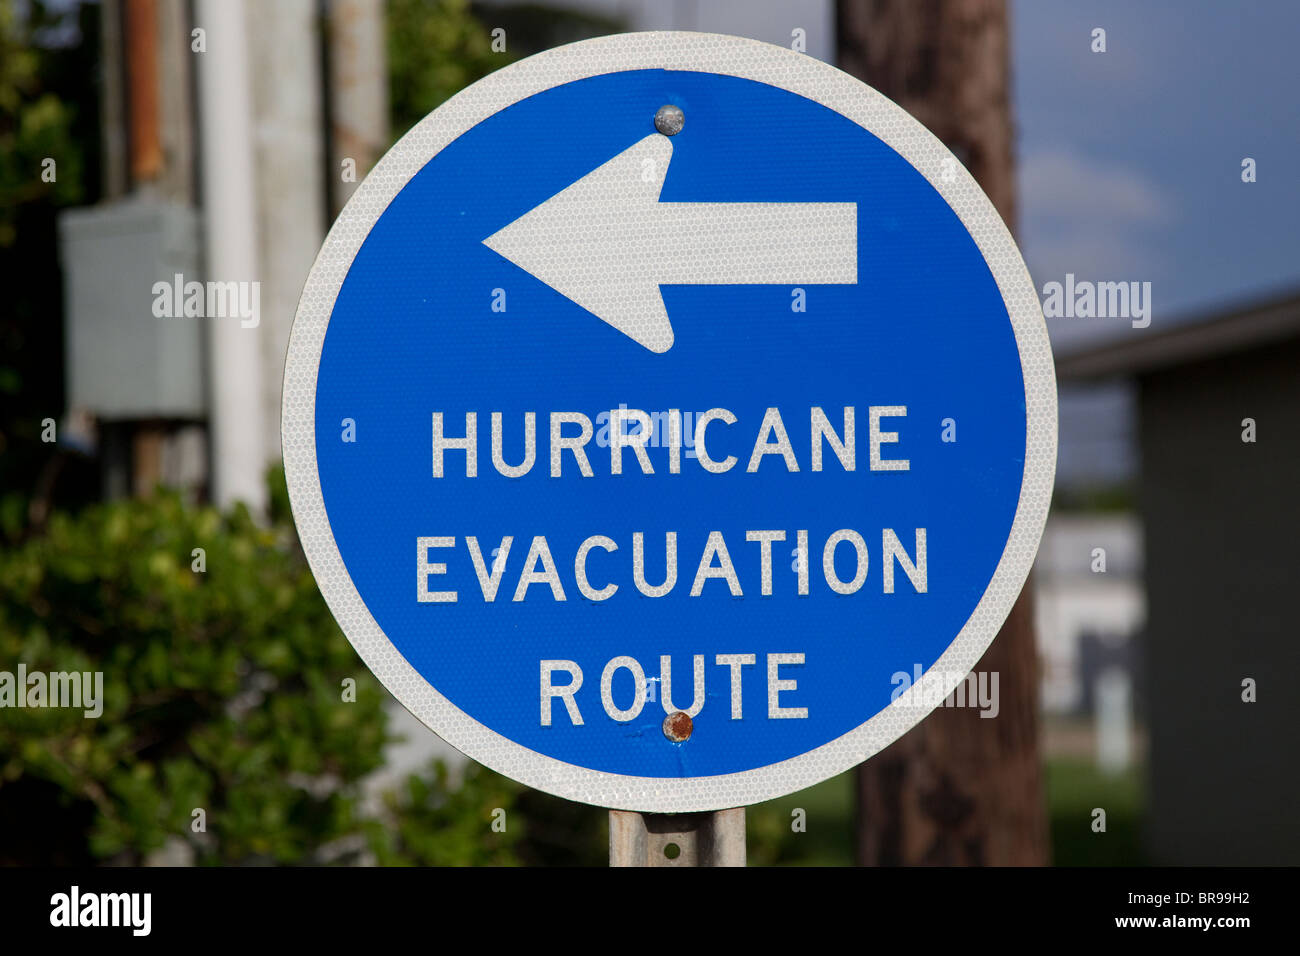 Hurricane Evacuation Route sign in blue - Stock Image